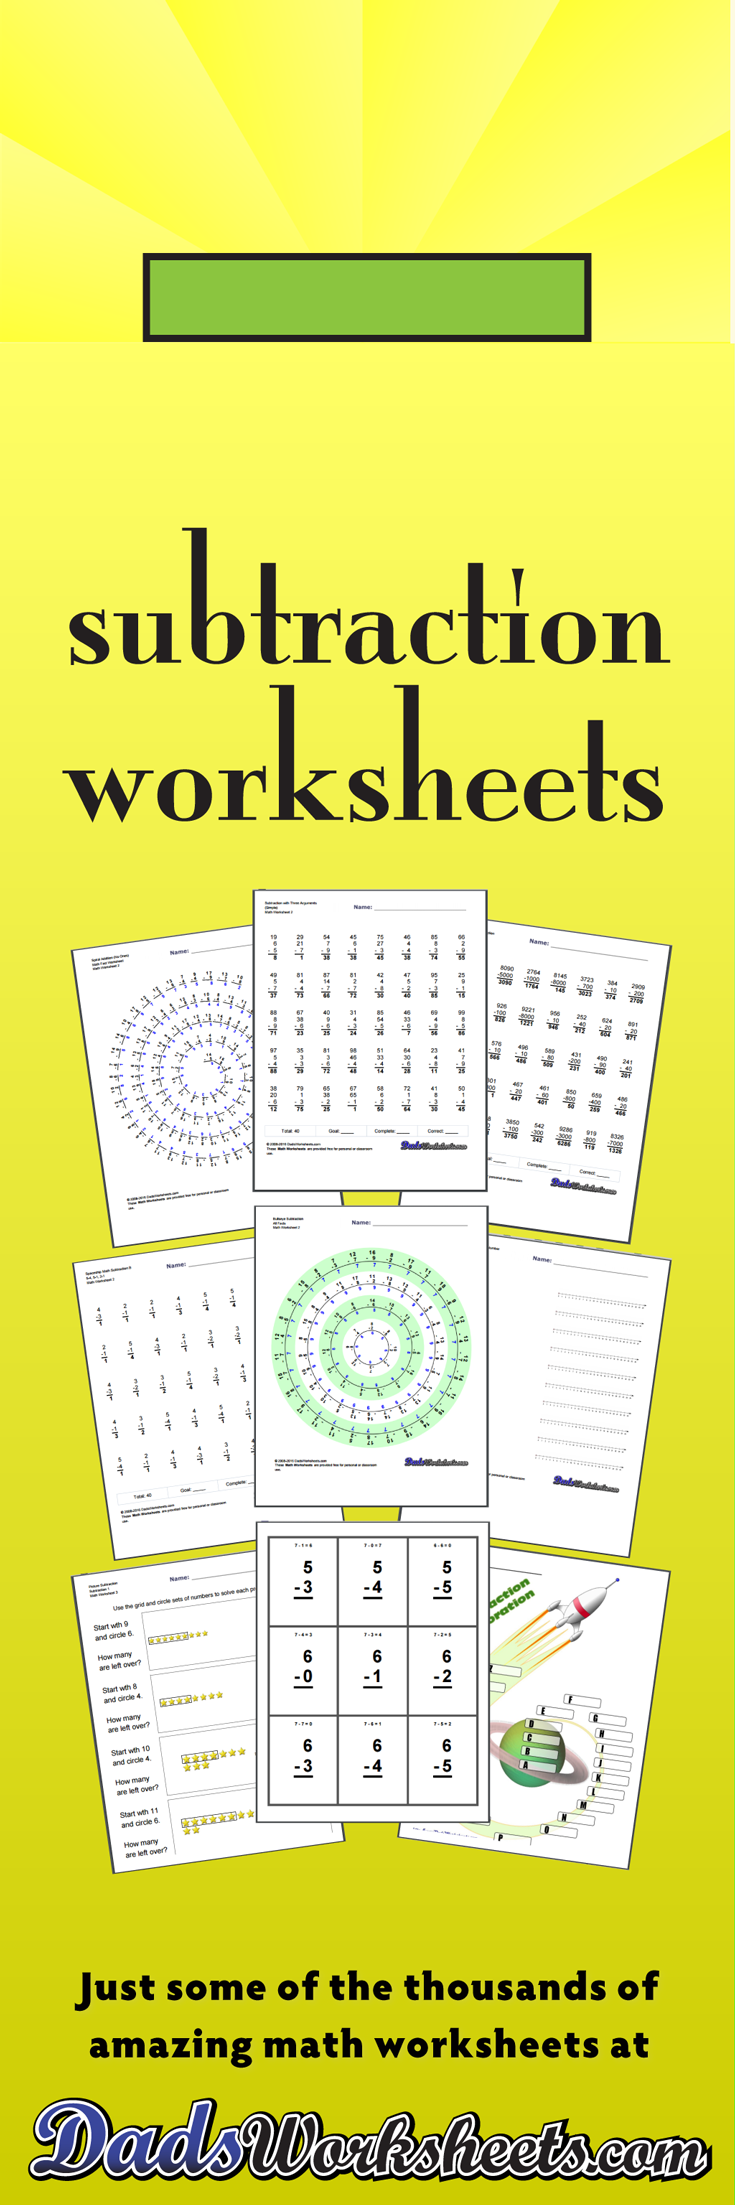 Uncategorized Subtraction Practice Worksheets 464 subtraction worksheets for you to print right now worksheets